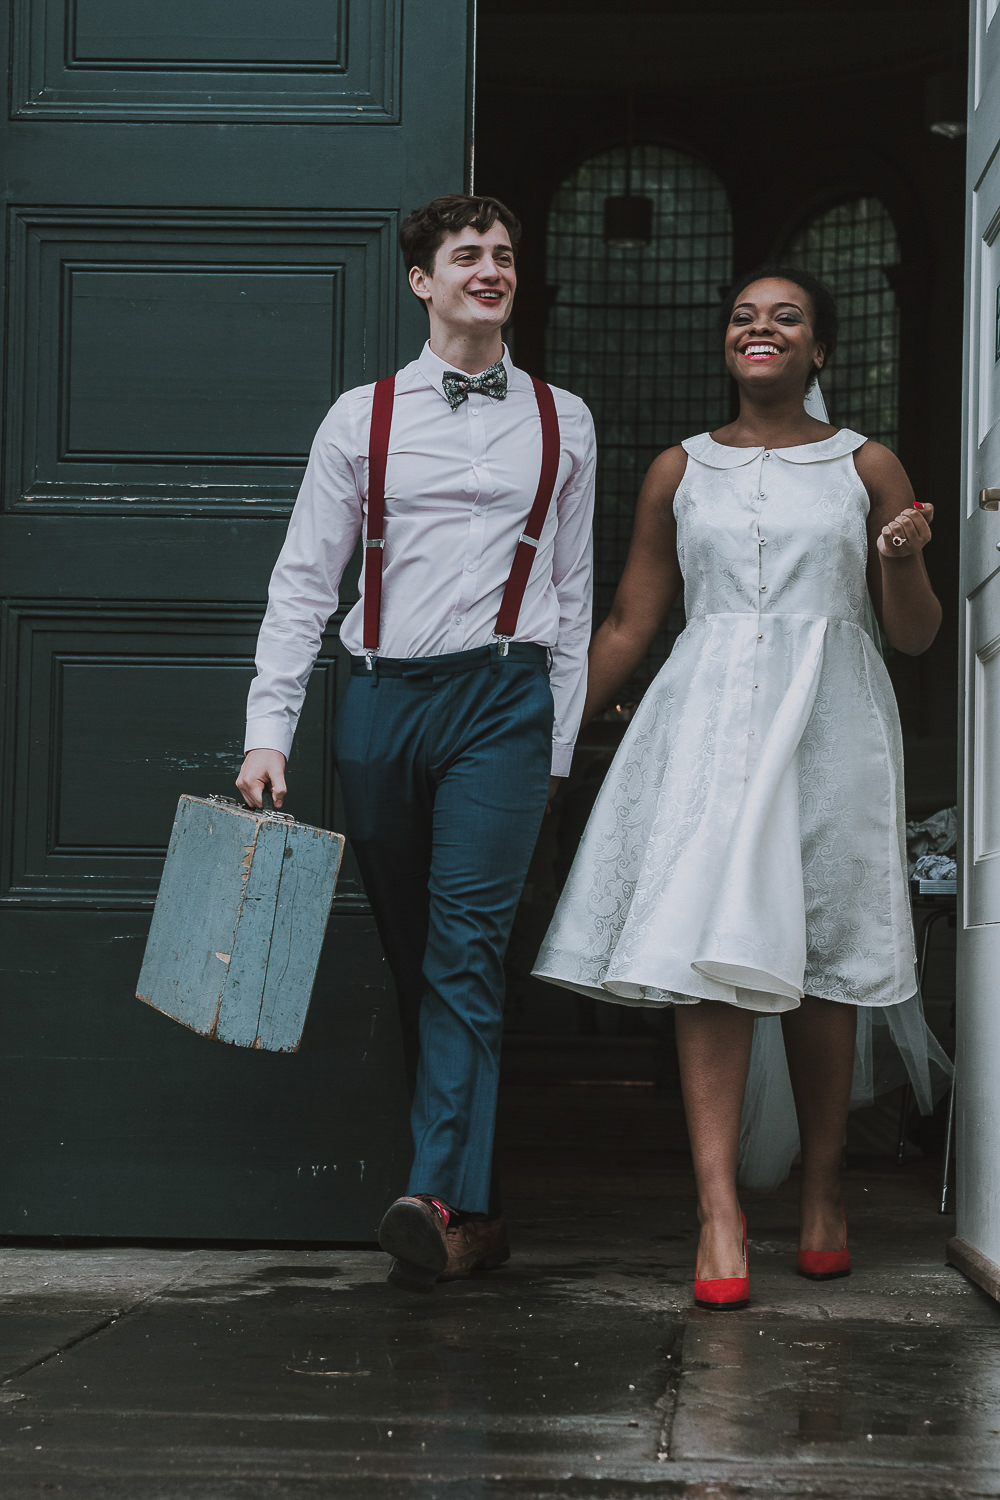 Groom Suit Navy Floral Bow Tie Braces Suitcase Wes Anderson William Morris Wedding Ideas Jessica Hill Photography